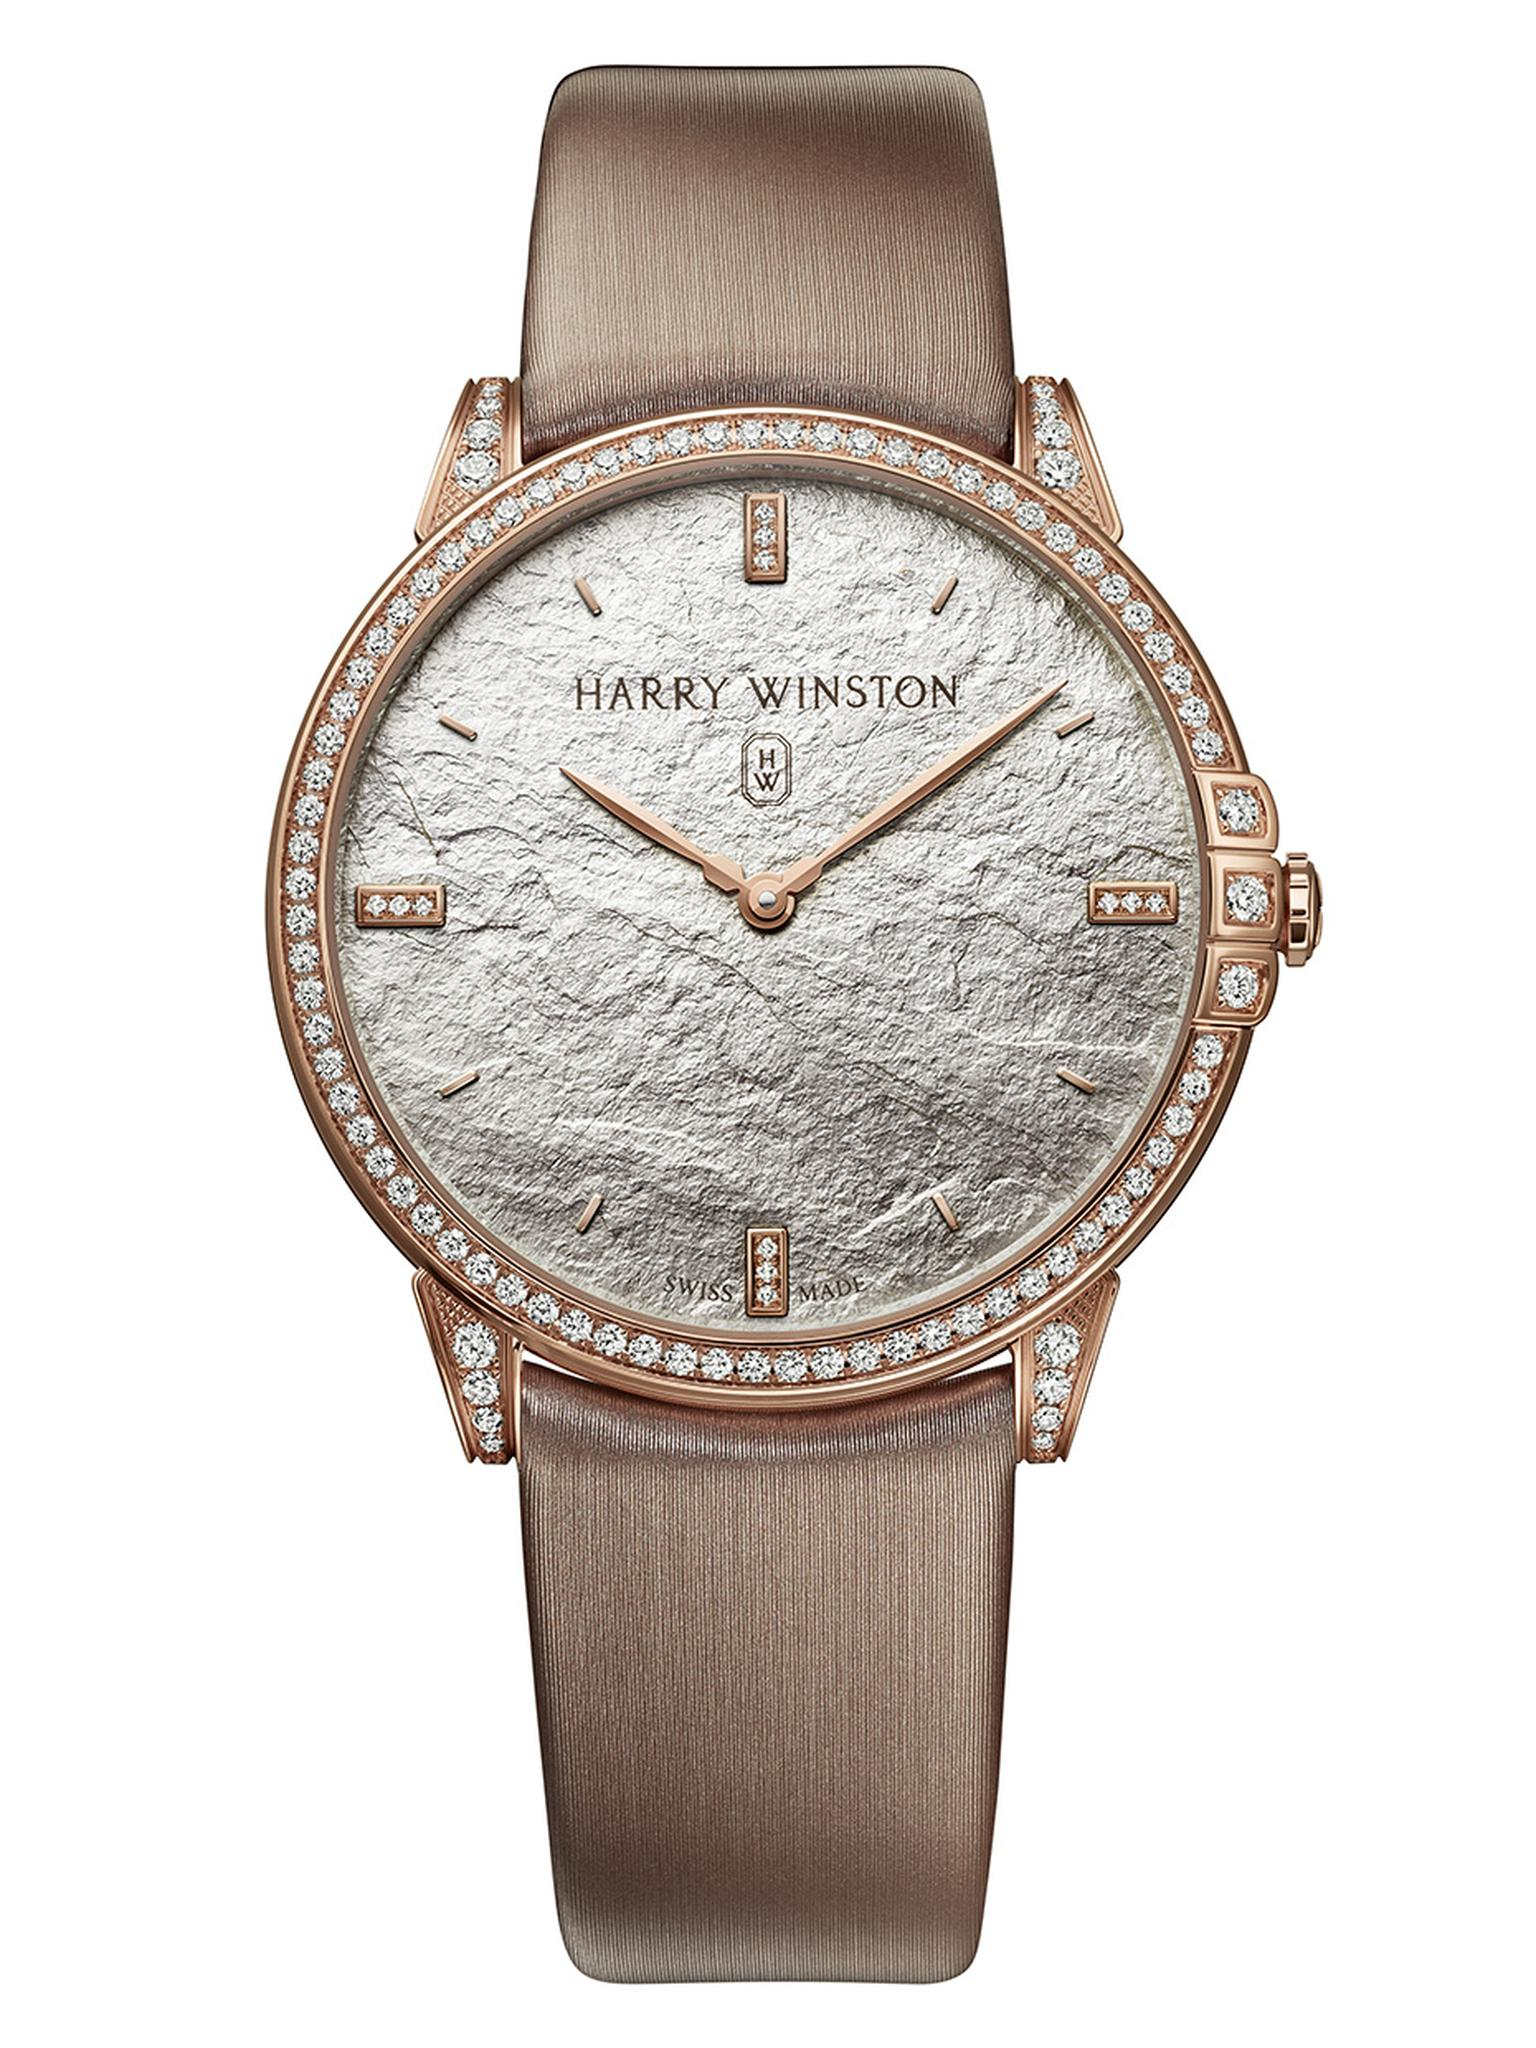 The women's Midnight Monochrome watch